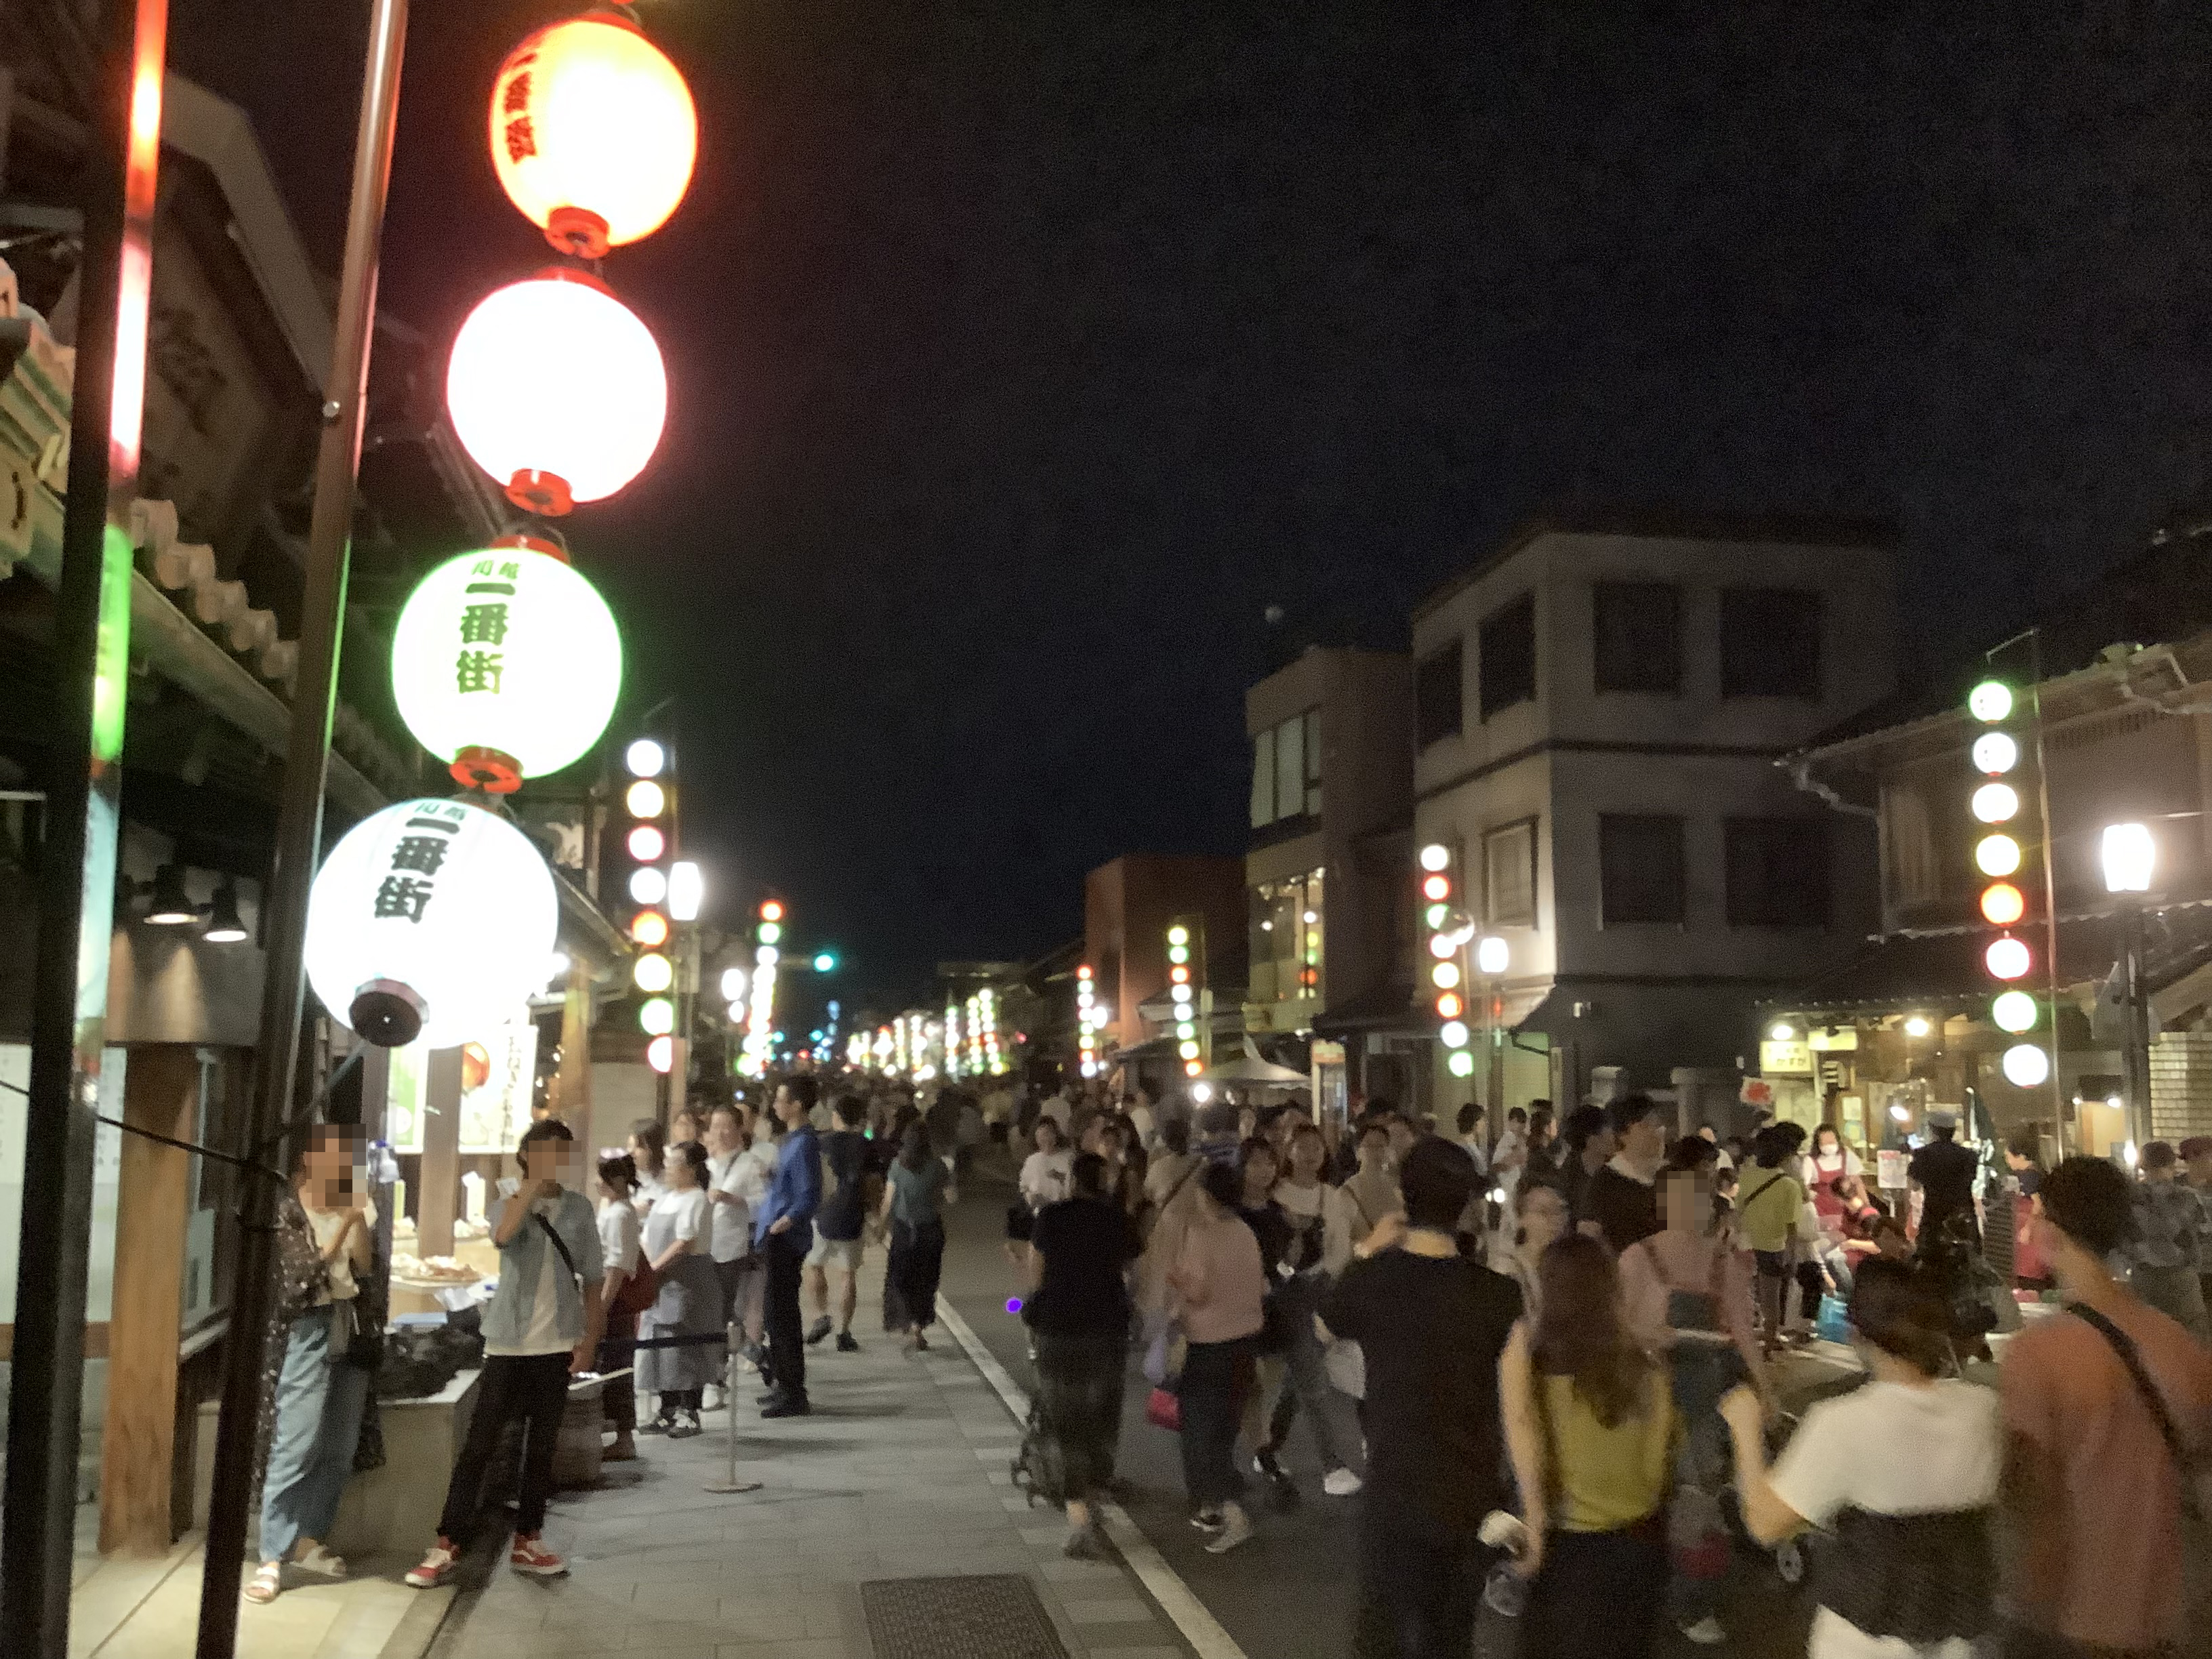 pictures of Ichiban-gai at night